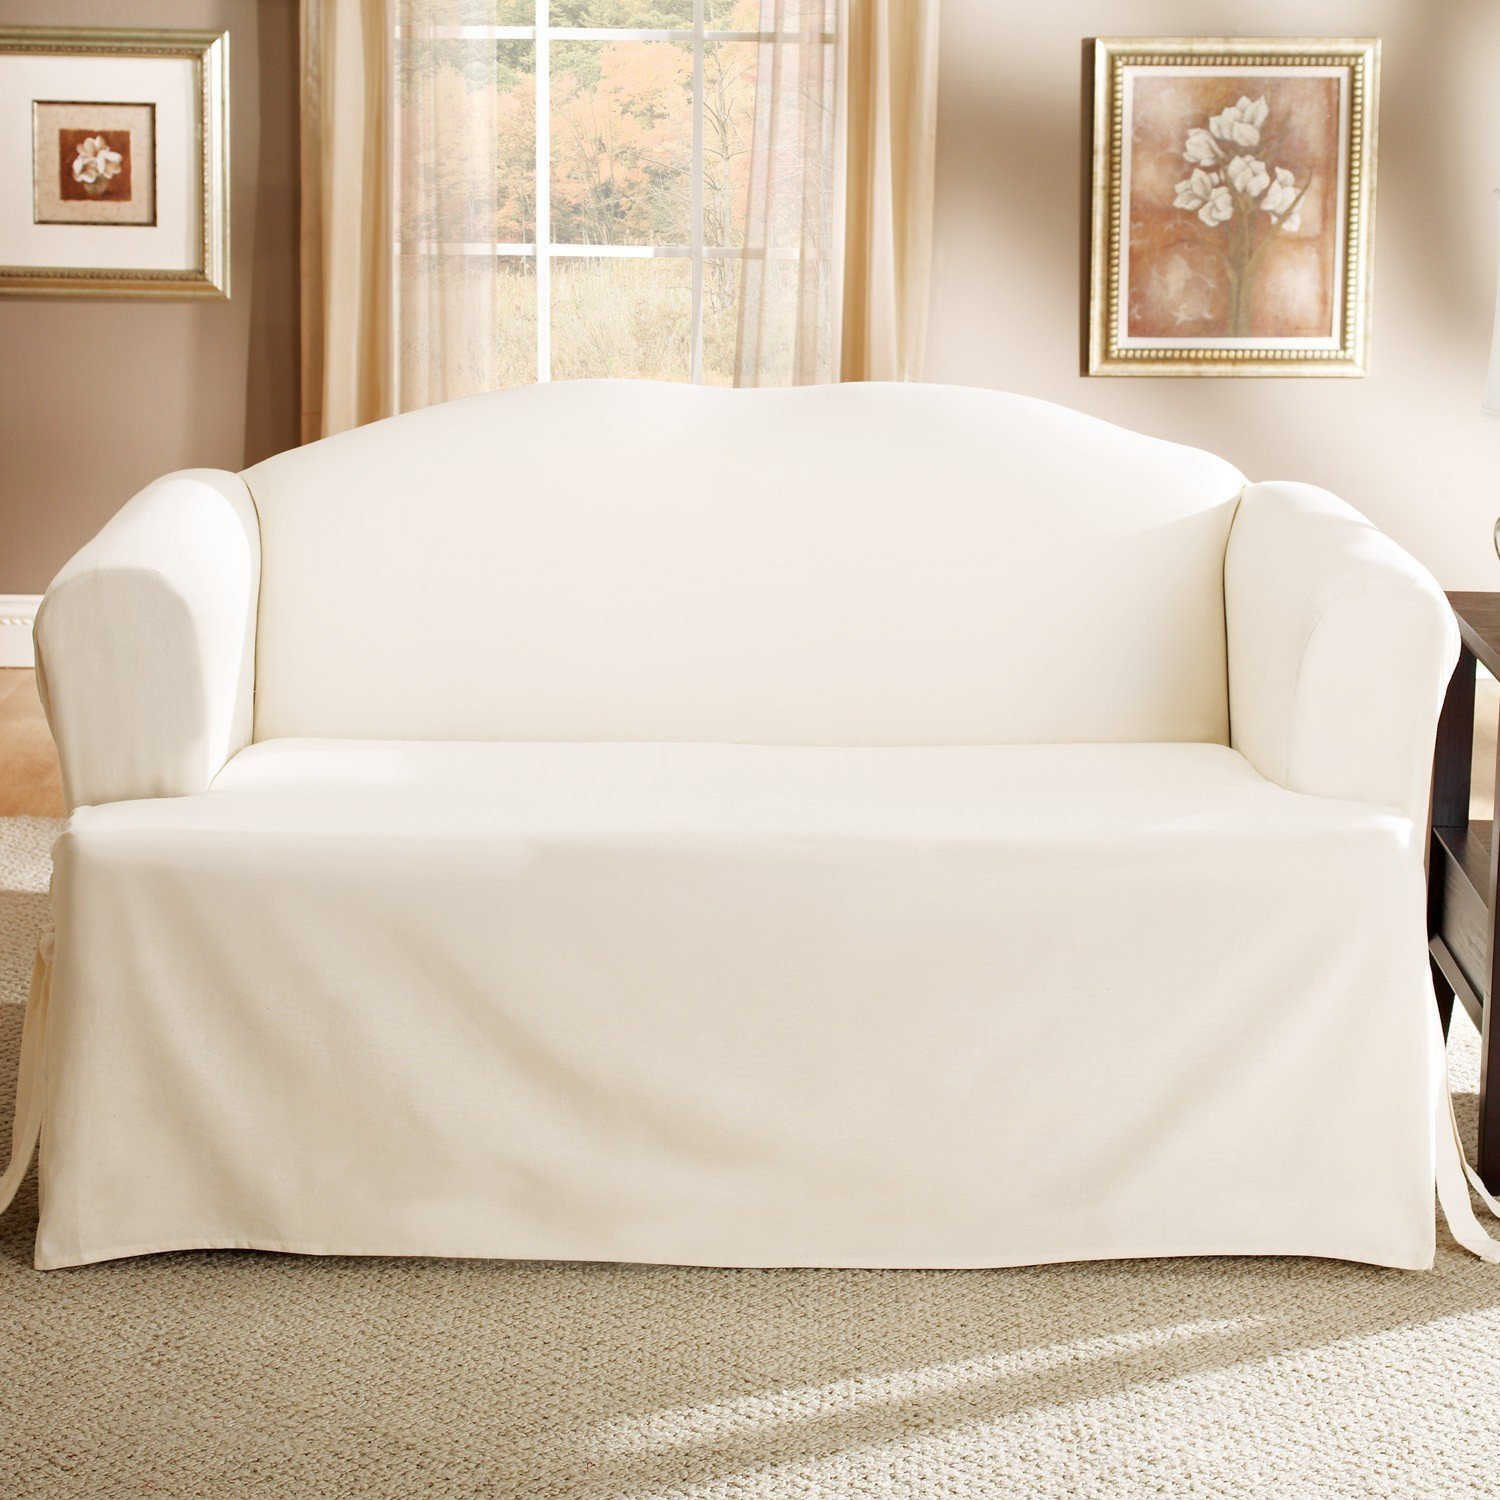 Couch Slipcovers For Reclining Sofa : couch covers for reclining couches - islam-shia.org